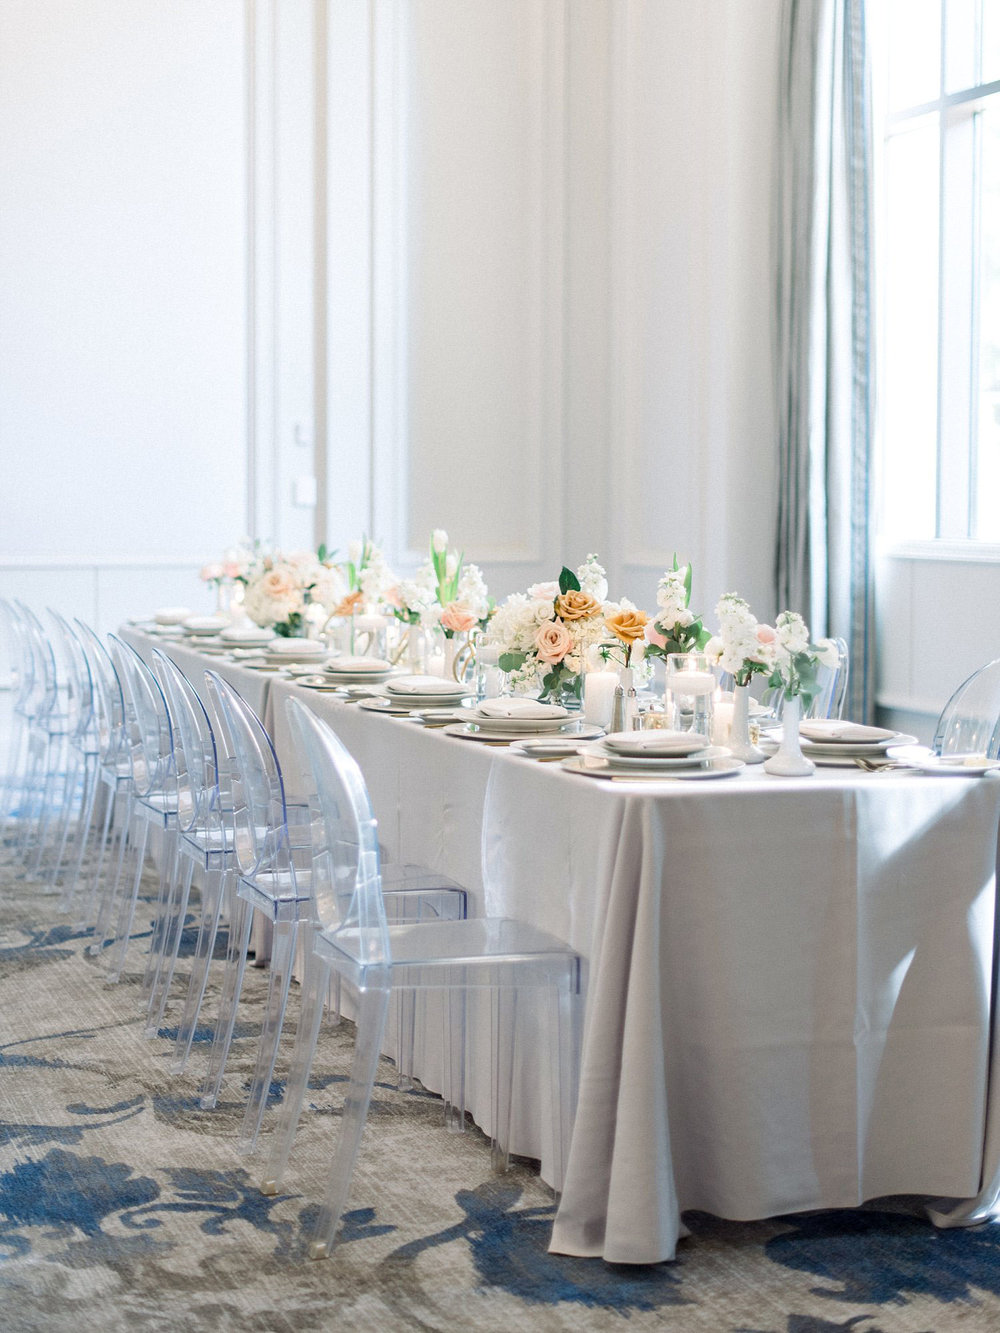 Ballroom wedding with Acrylic Chairs with a light grey linen